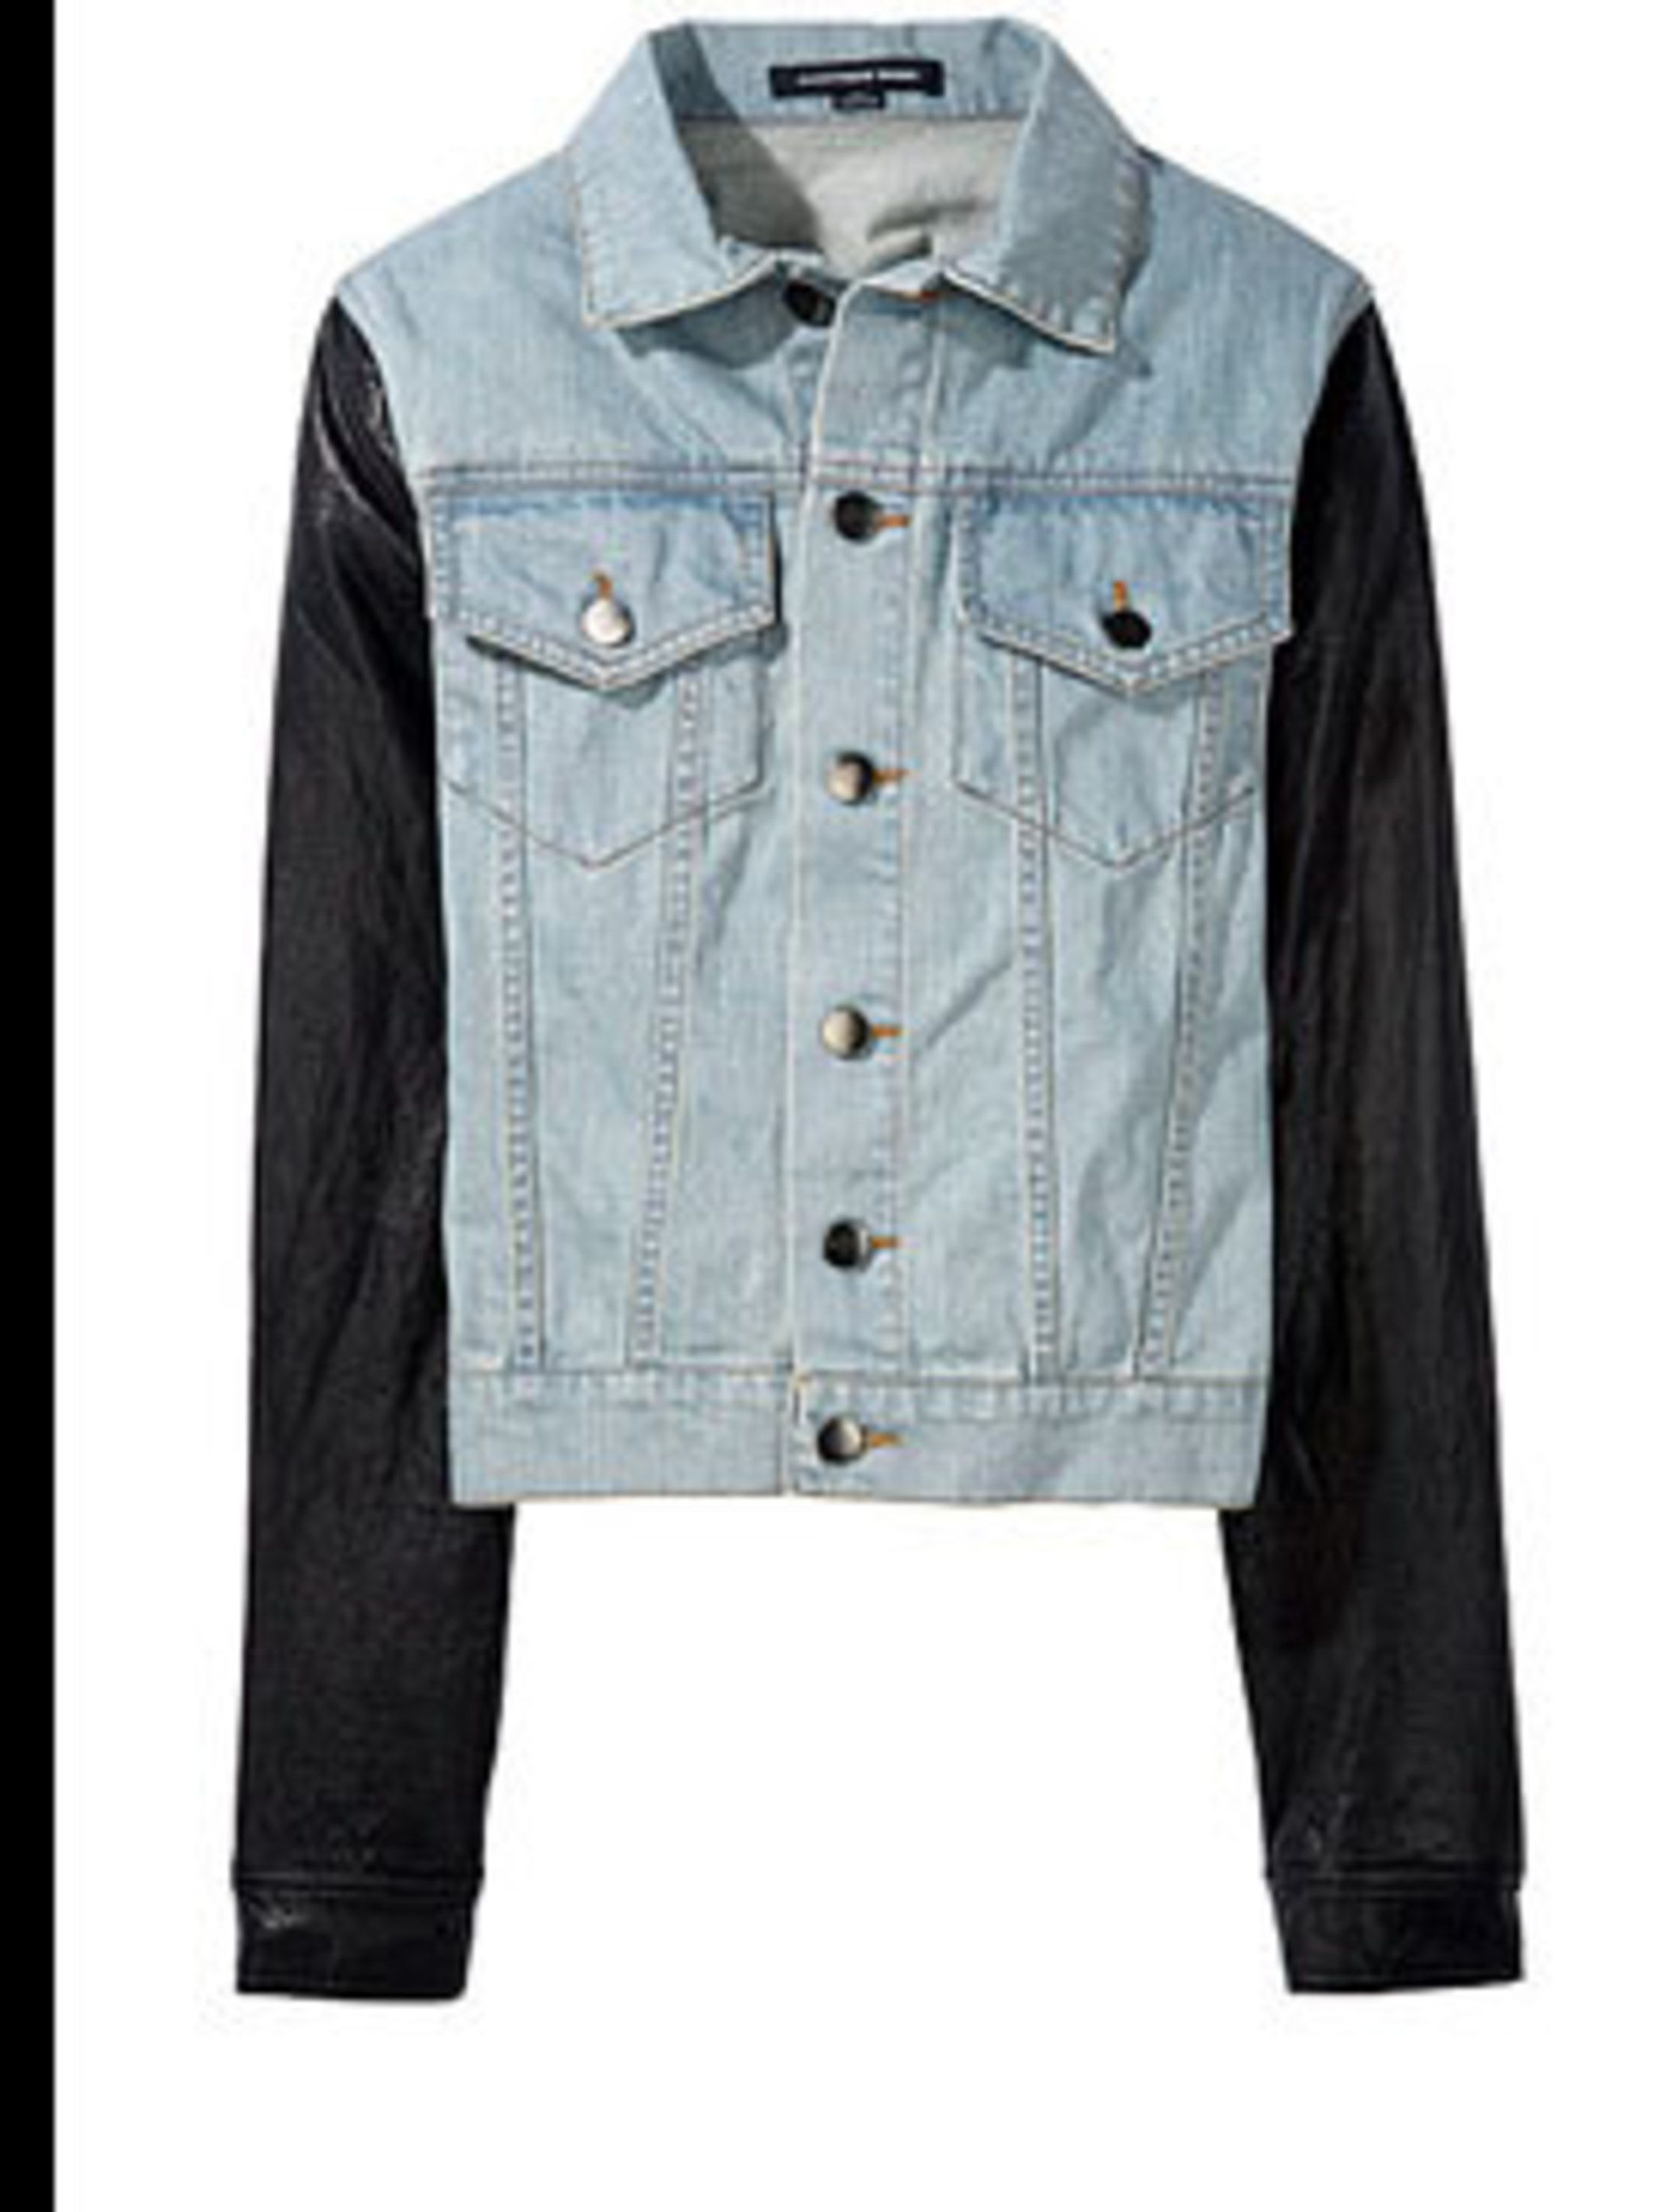 "<p>Denim and leather jacket, £352, by Alexander Wang at <a href=""http://www.lagarconne.com/store/item.htm?itemid=4863&sid=274&pid=124"">La Garconne</a></p>"